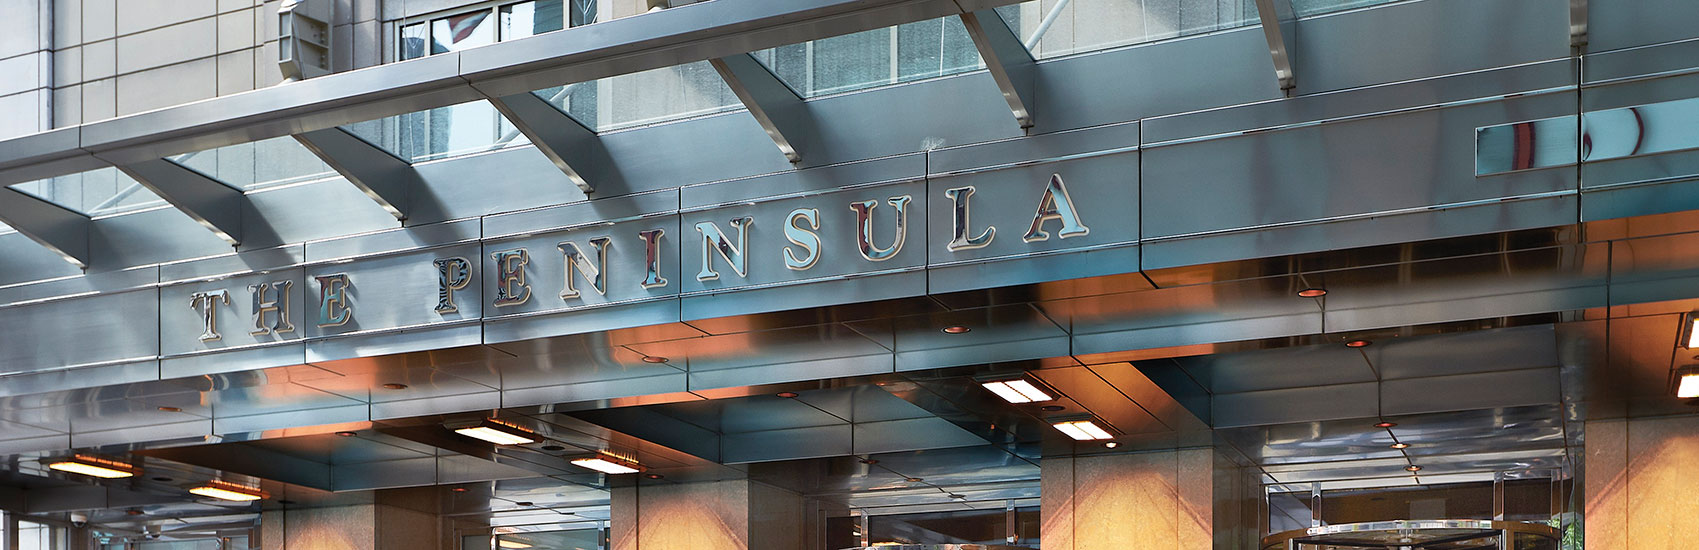 The Peninsula Chicago 0